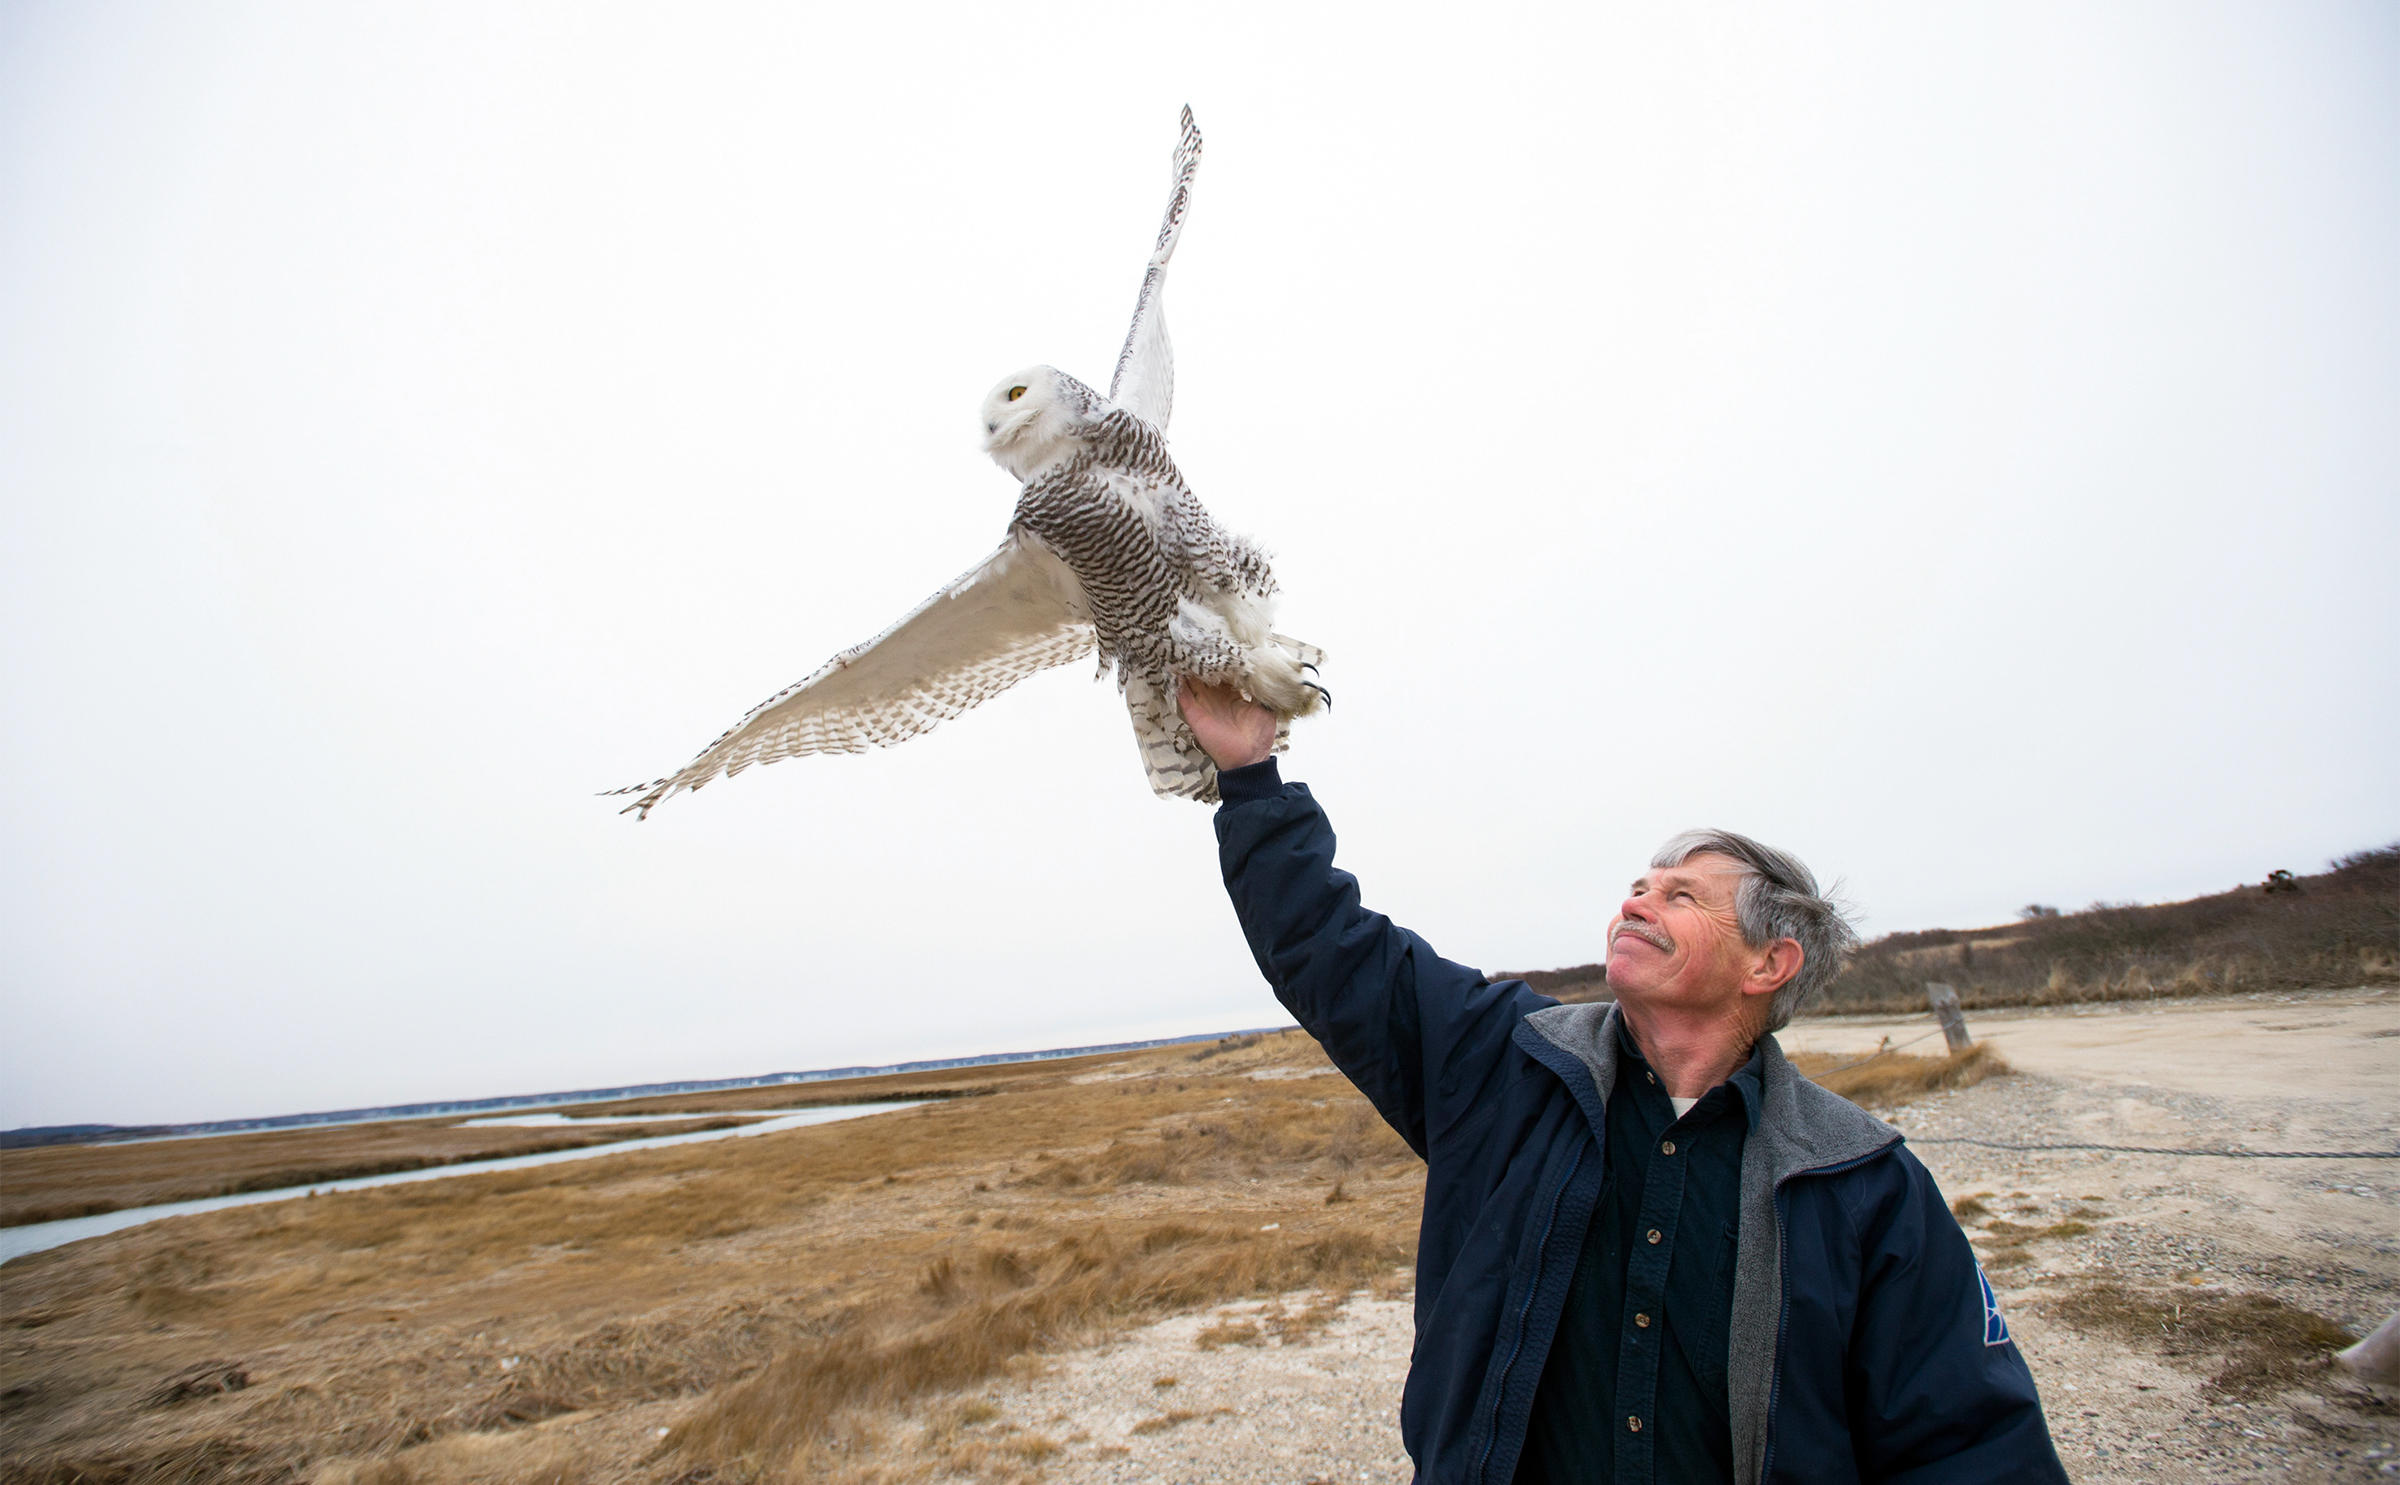 Norman Smith releases a Snowy Owl on a beach in Duxbury, Massachusetts, that had recently been captured at Logan Airport in Boston. Gretchen Ertl/The New York Times